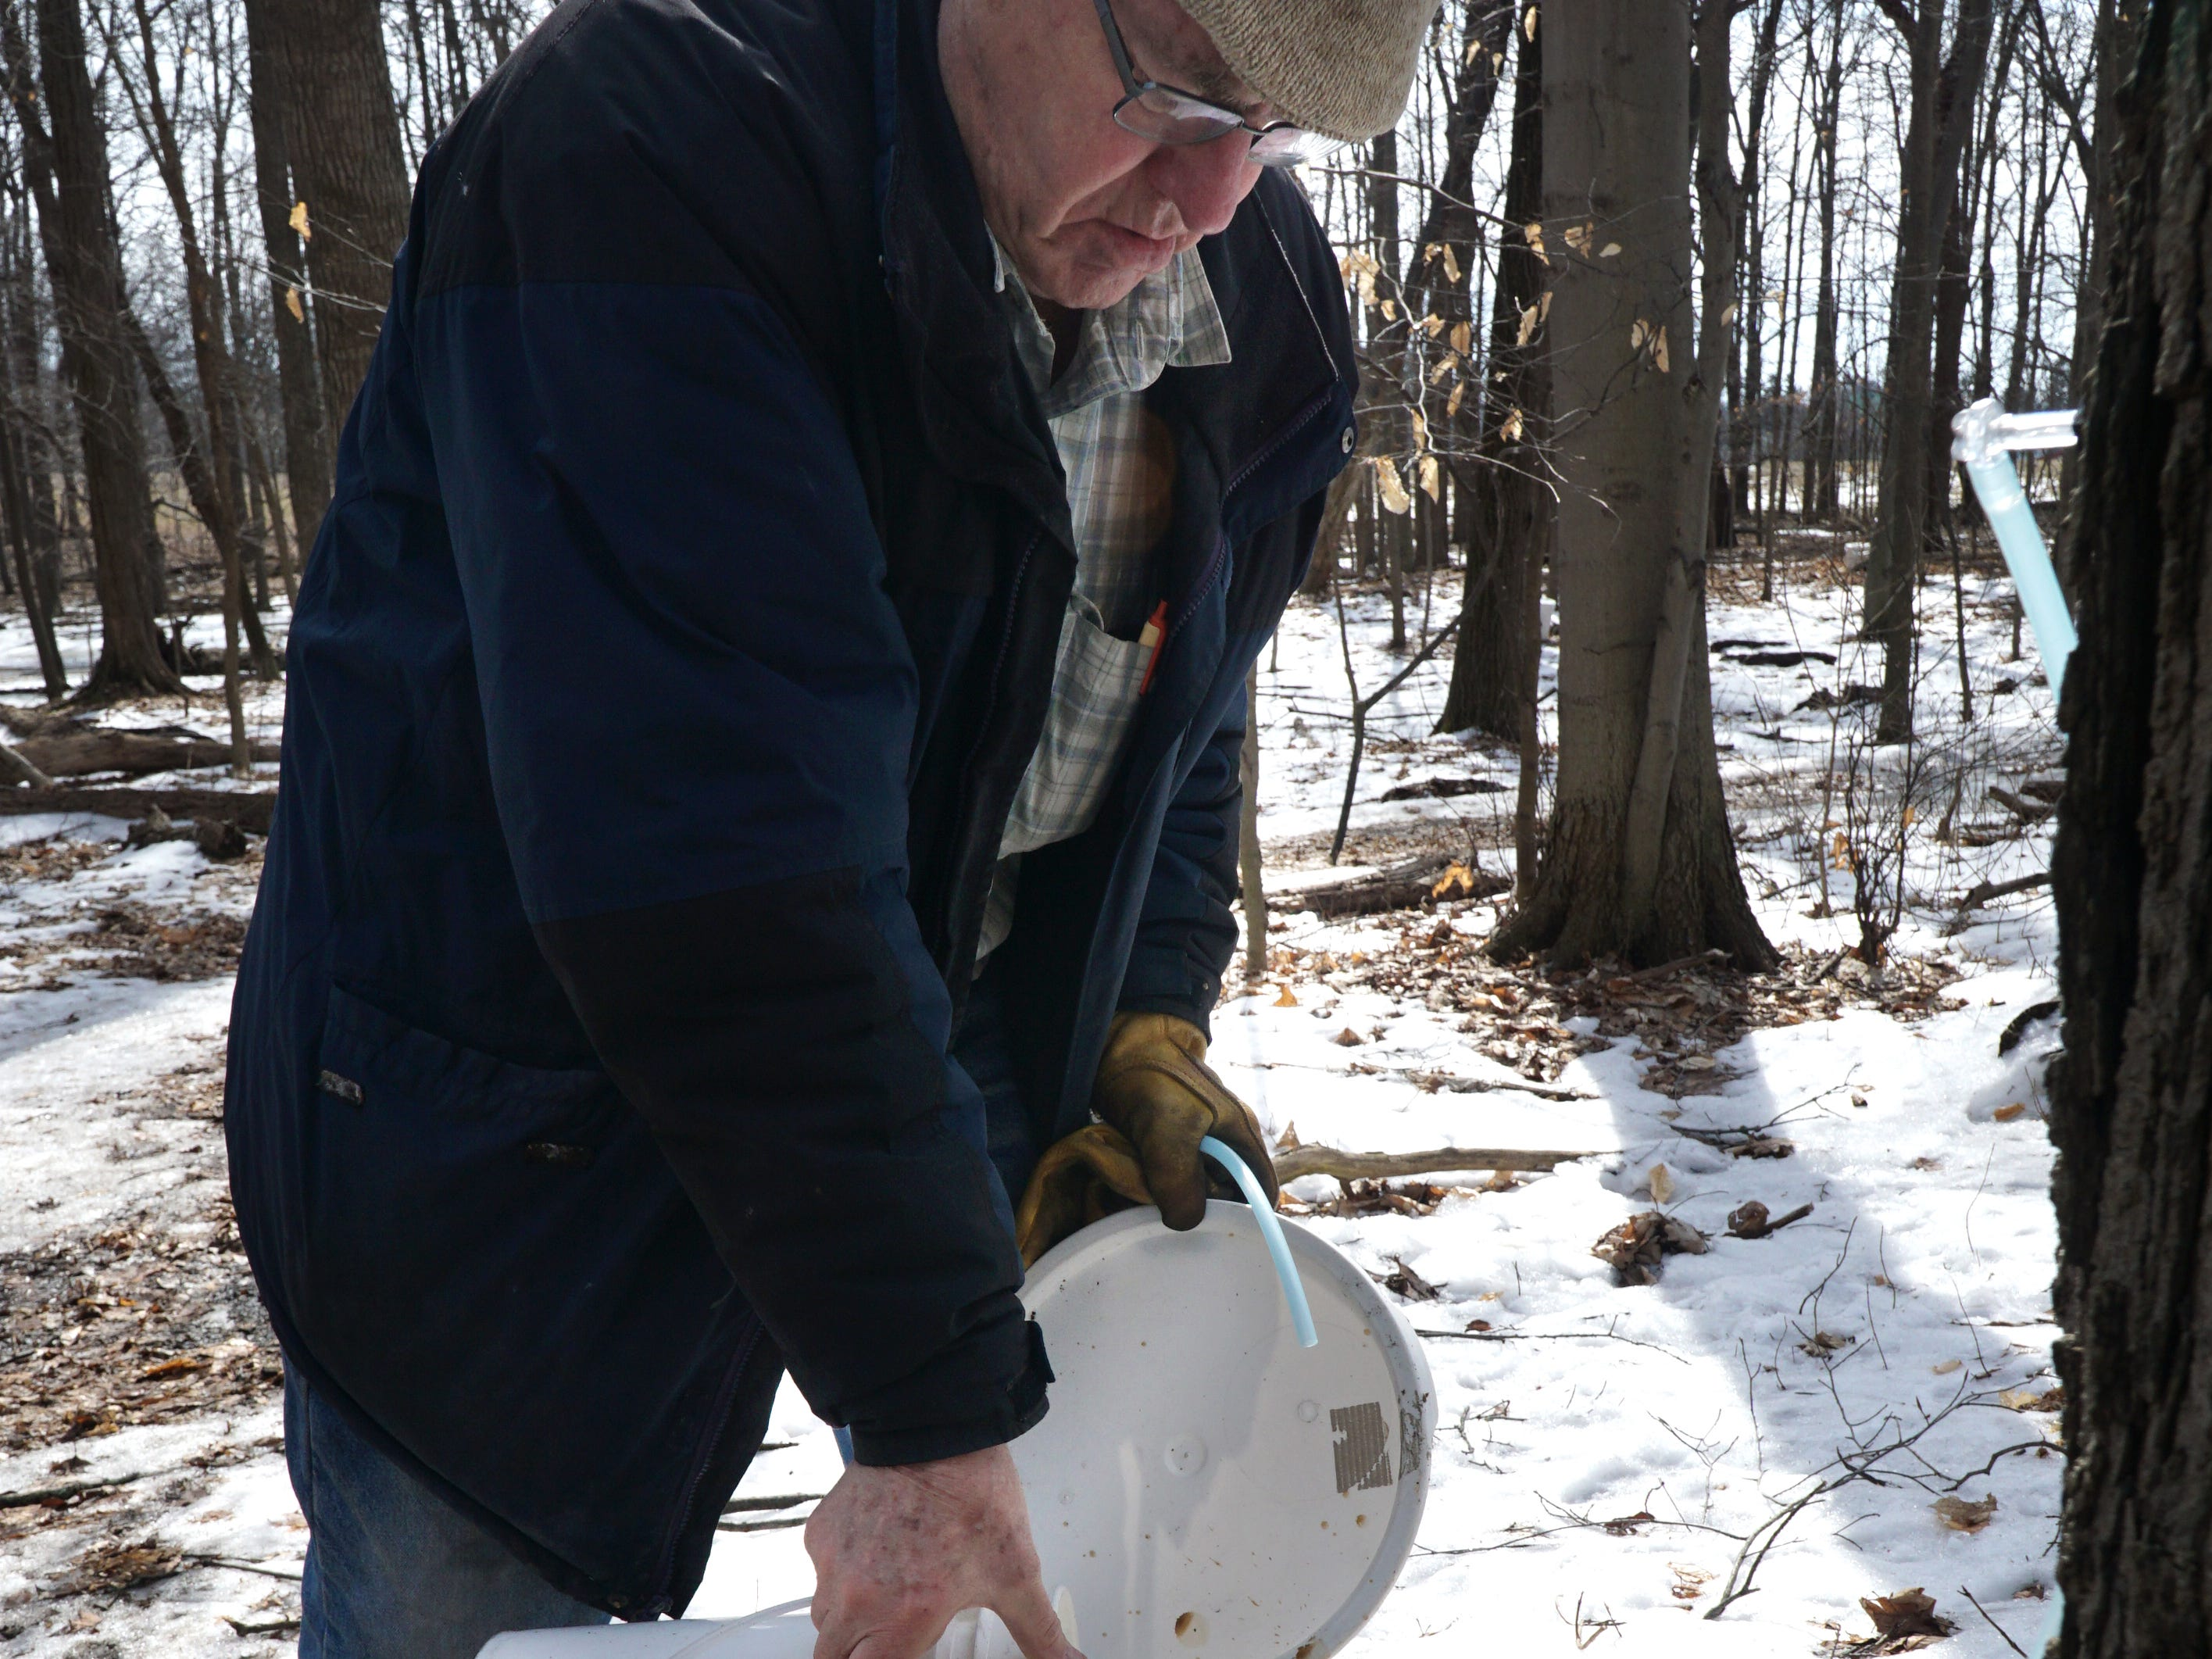 John McInnis pours sap from a collecting bucket to another for transport back to the sugar shack. When sap comes out of the trees its mostly water and its sugar content is less than 10 percent and has to have most of its water evaporated off to make syrup.